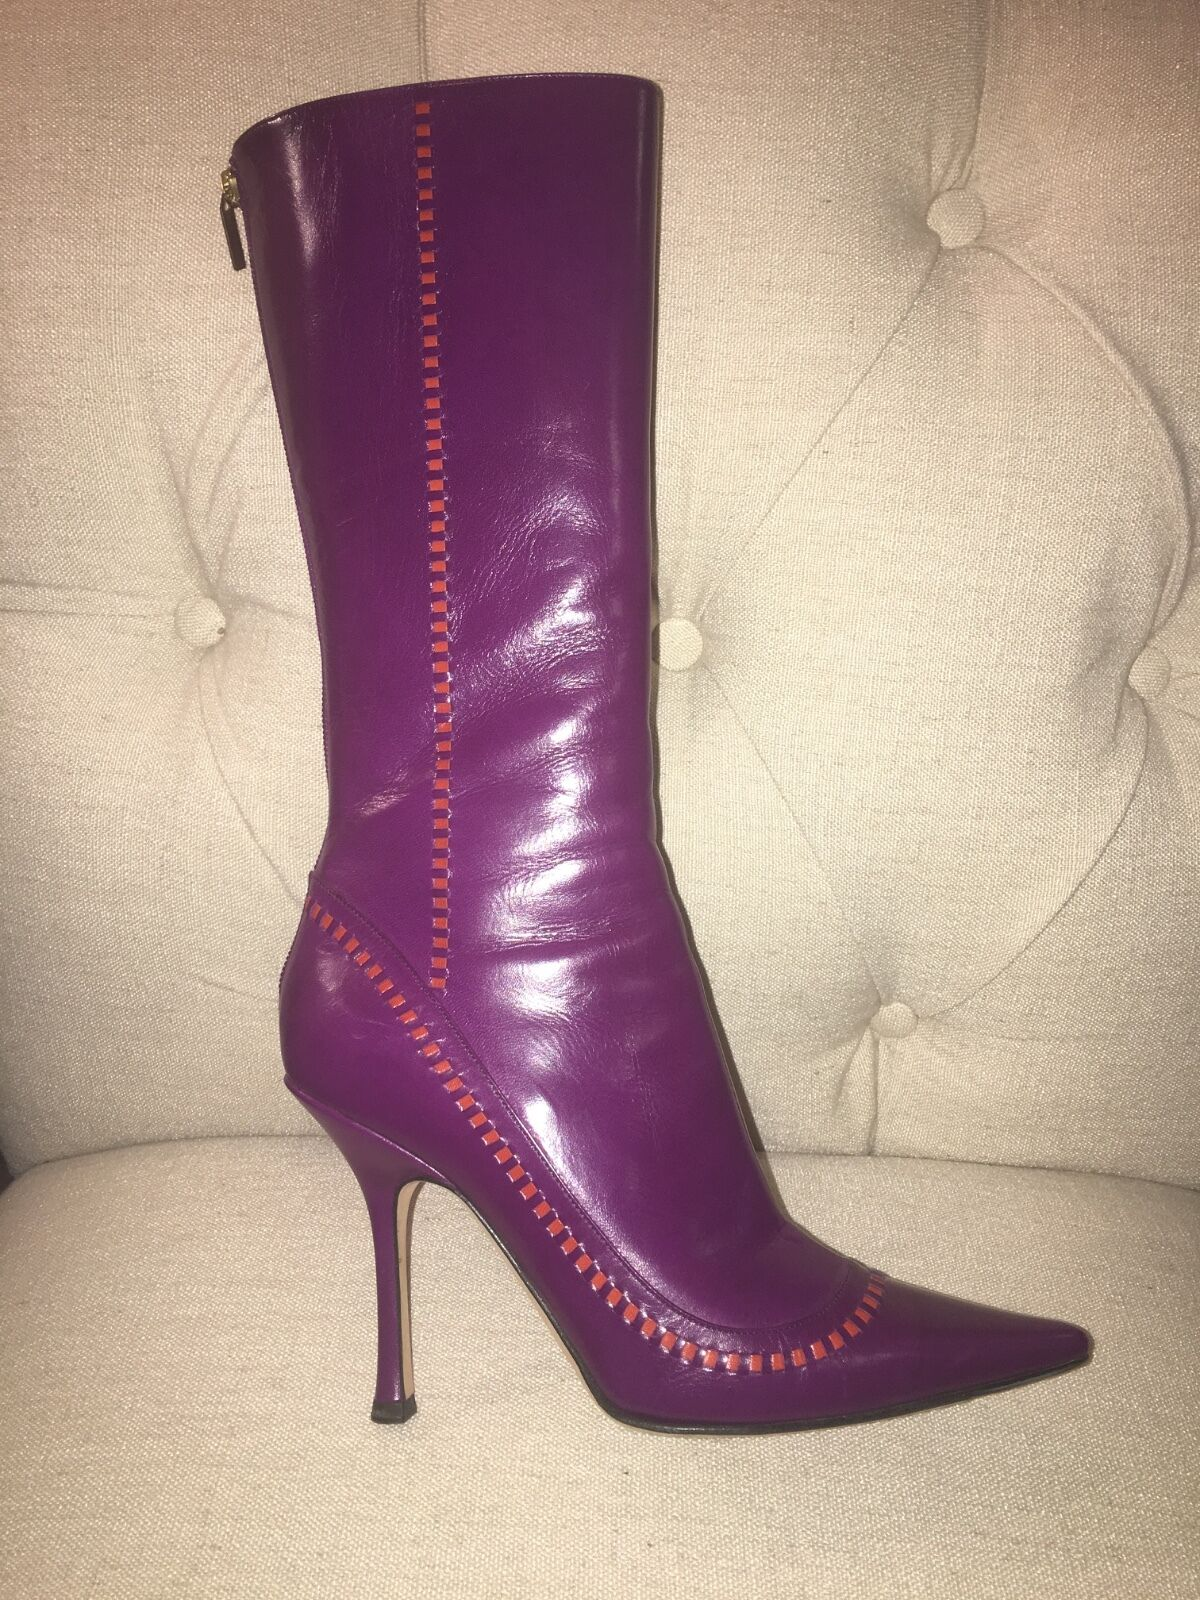 Authentic Jimmy Choo womens boots